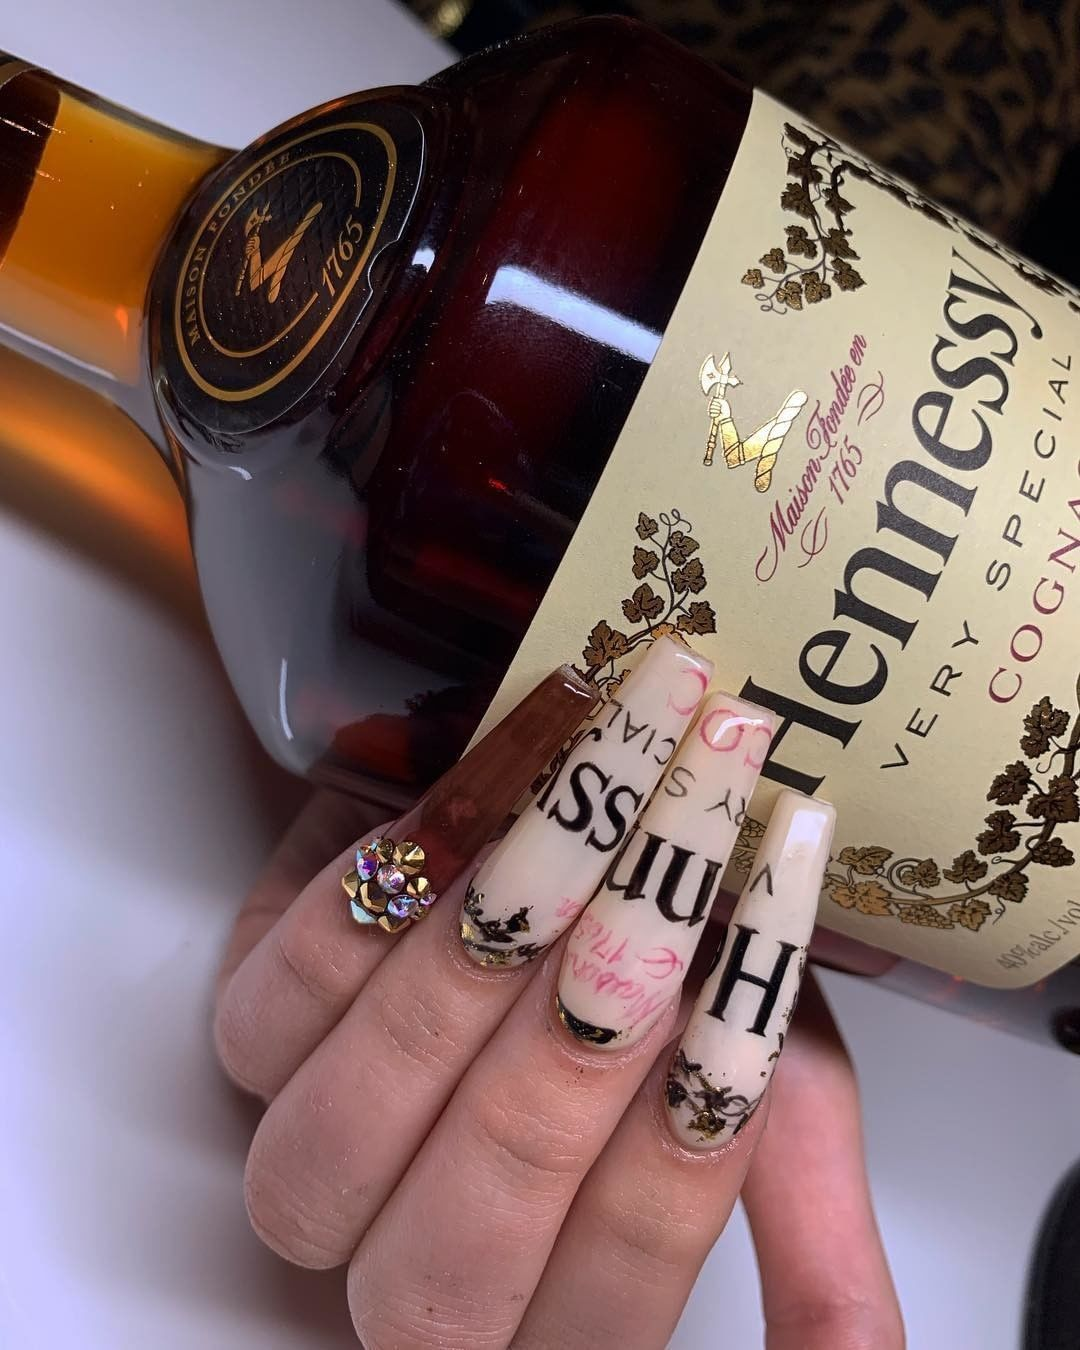 Hennessy Inspired Nails Hennessynails Nails Alcoholnails Shiny Nails Designs Nail Designs Nails